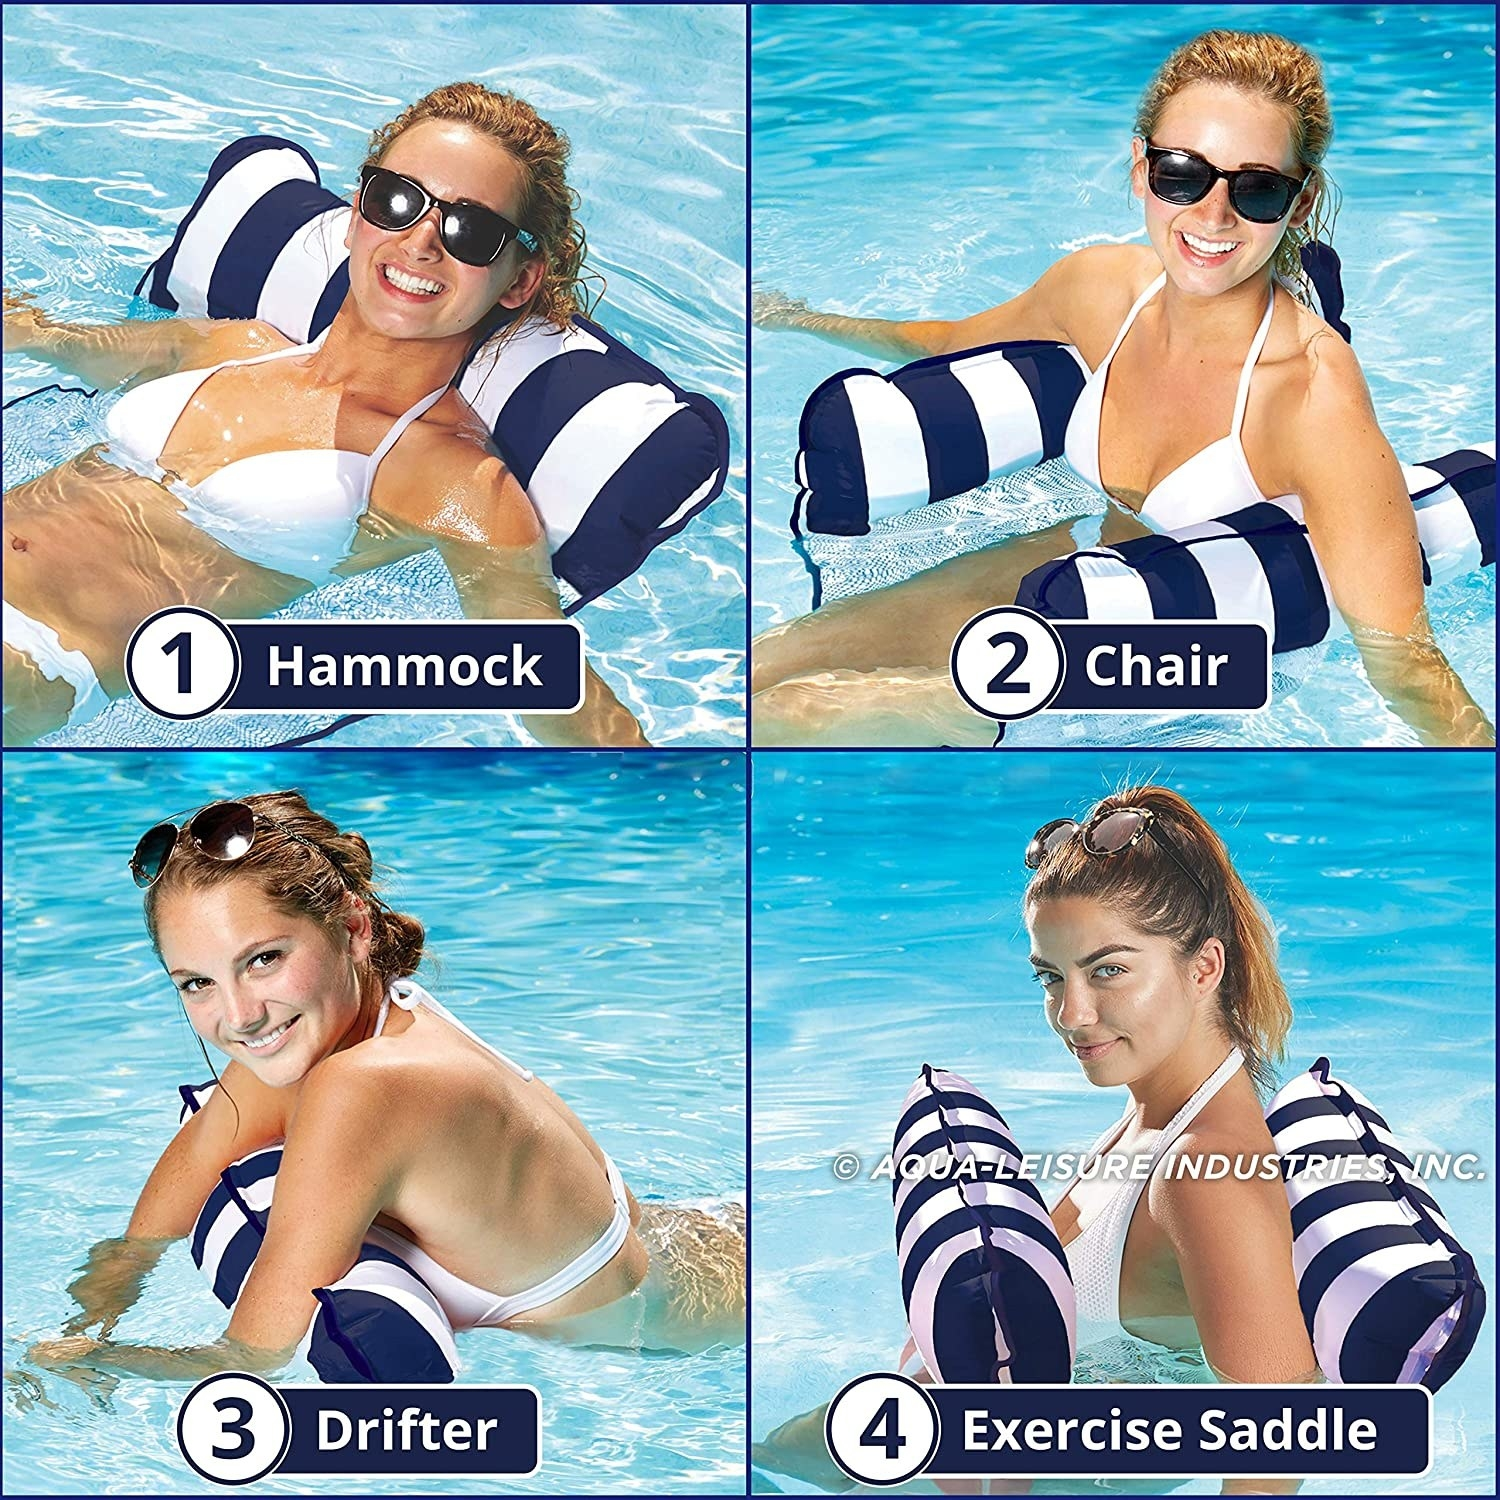 Model showing four ways to use the float, which is set up like a floating hammock